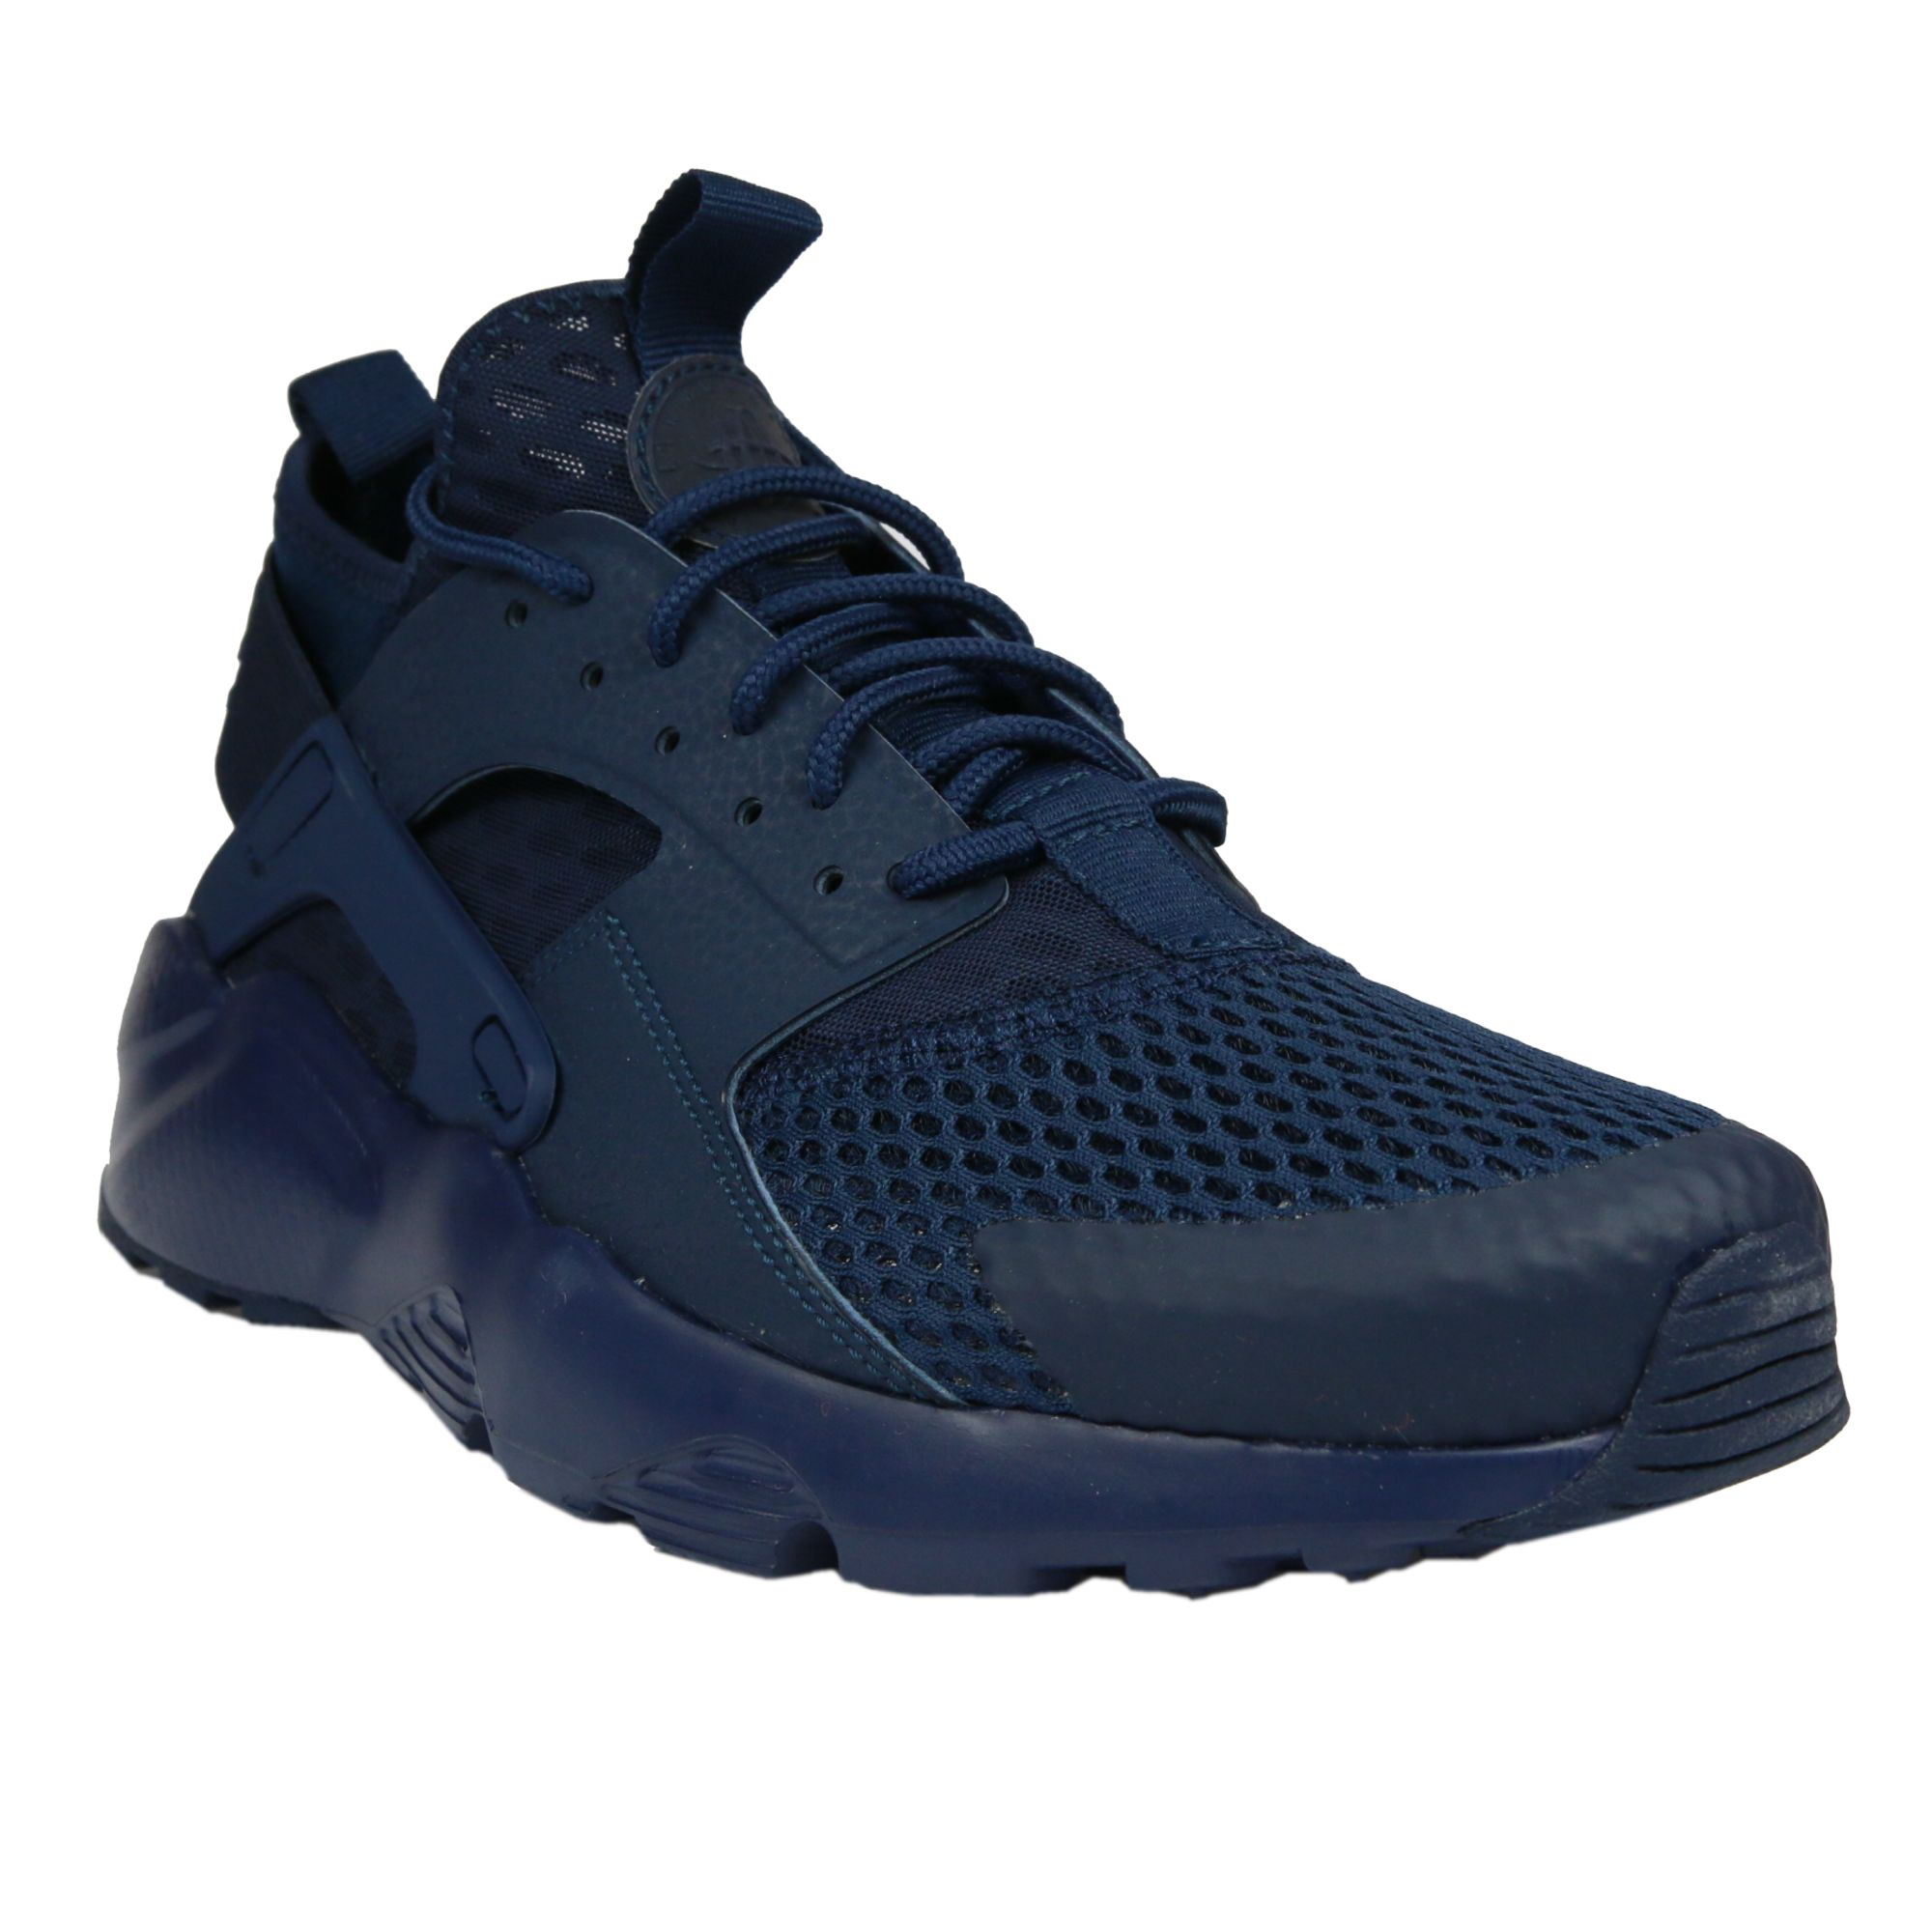 nike air huarache schuhe turnschuhe sneaker herren 318429 ebay. Black Bedroom Furniture Sets. Home Design Ideas